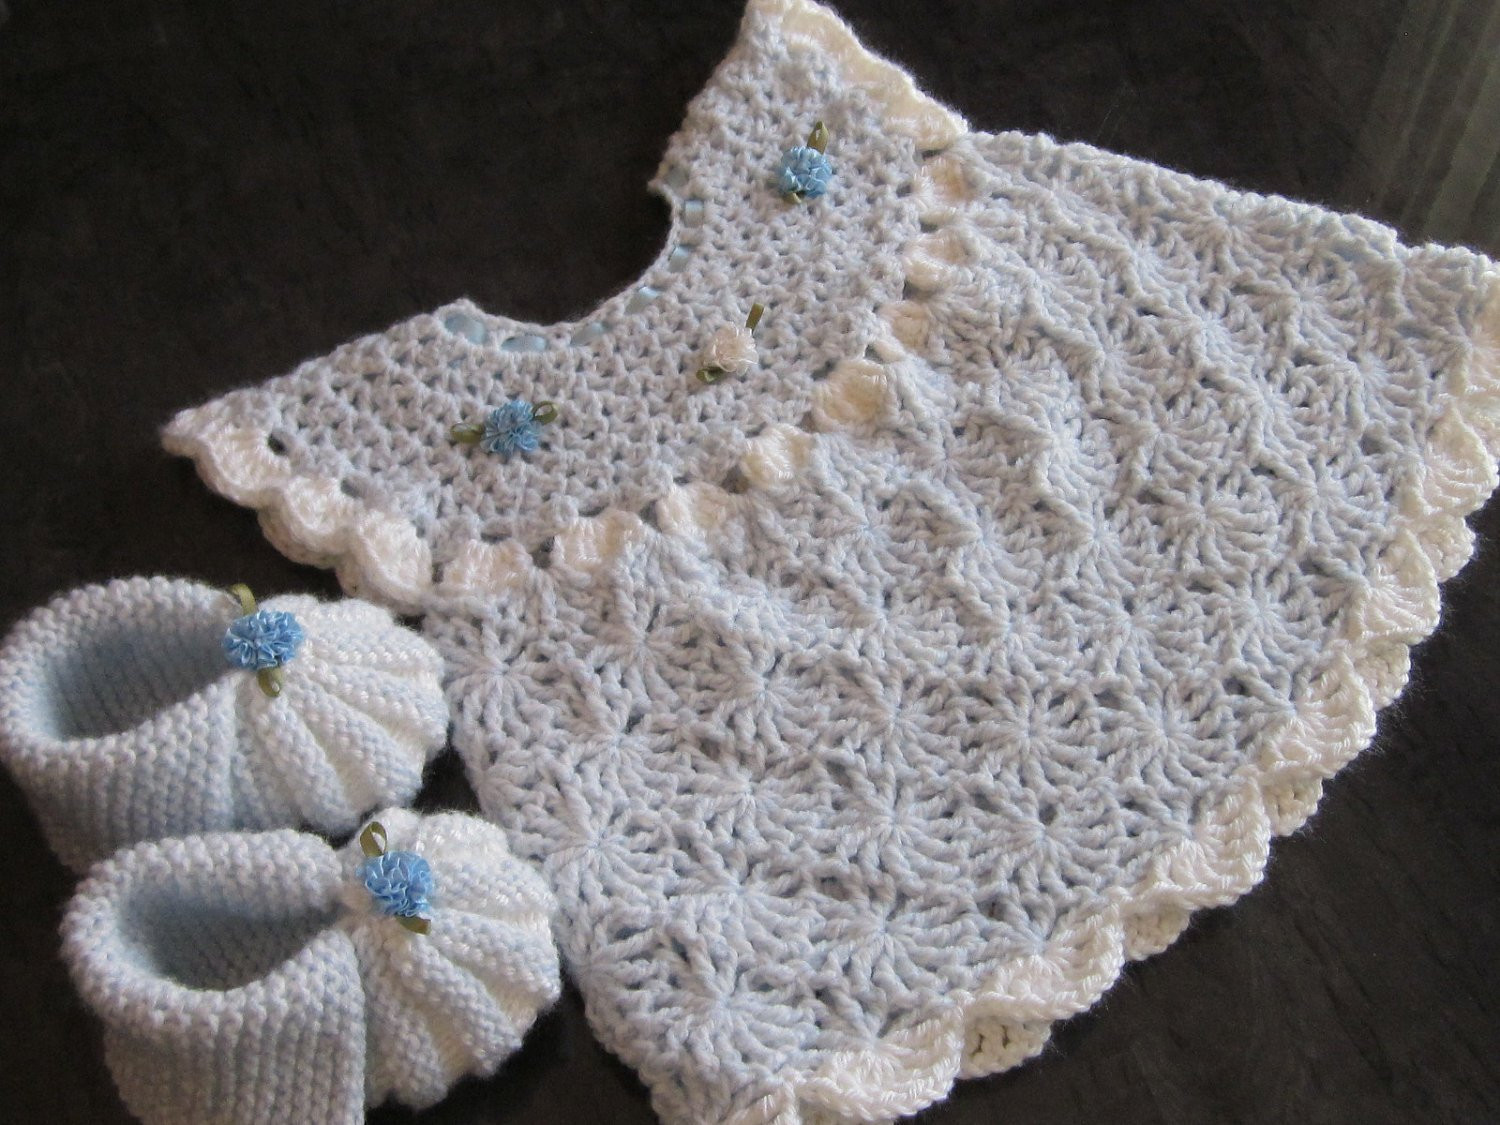 Lovely Handmade Baby Crochet Dress and Booties Set 0 6 Month Handmade Crochet Of Delightful 40 Pics Handmade Crochet